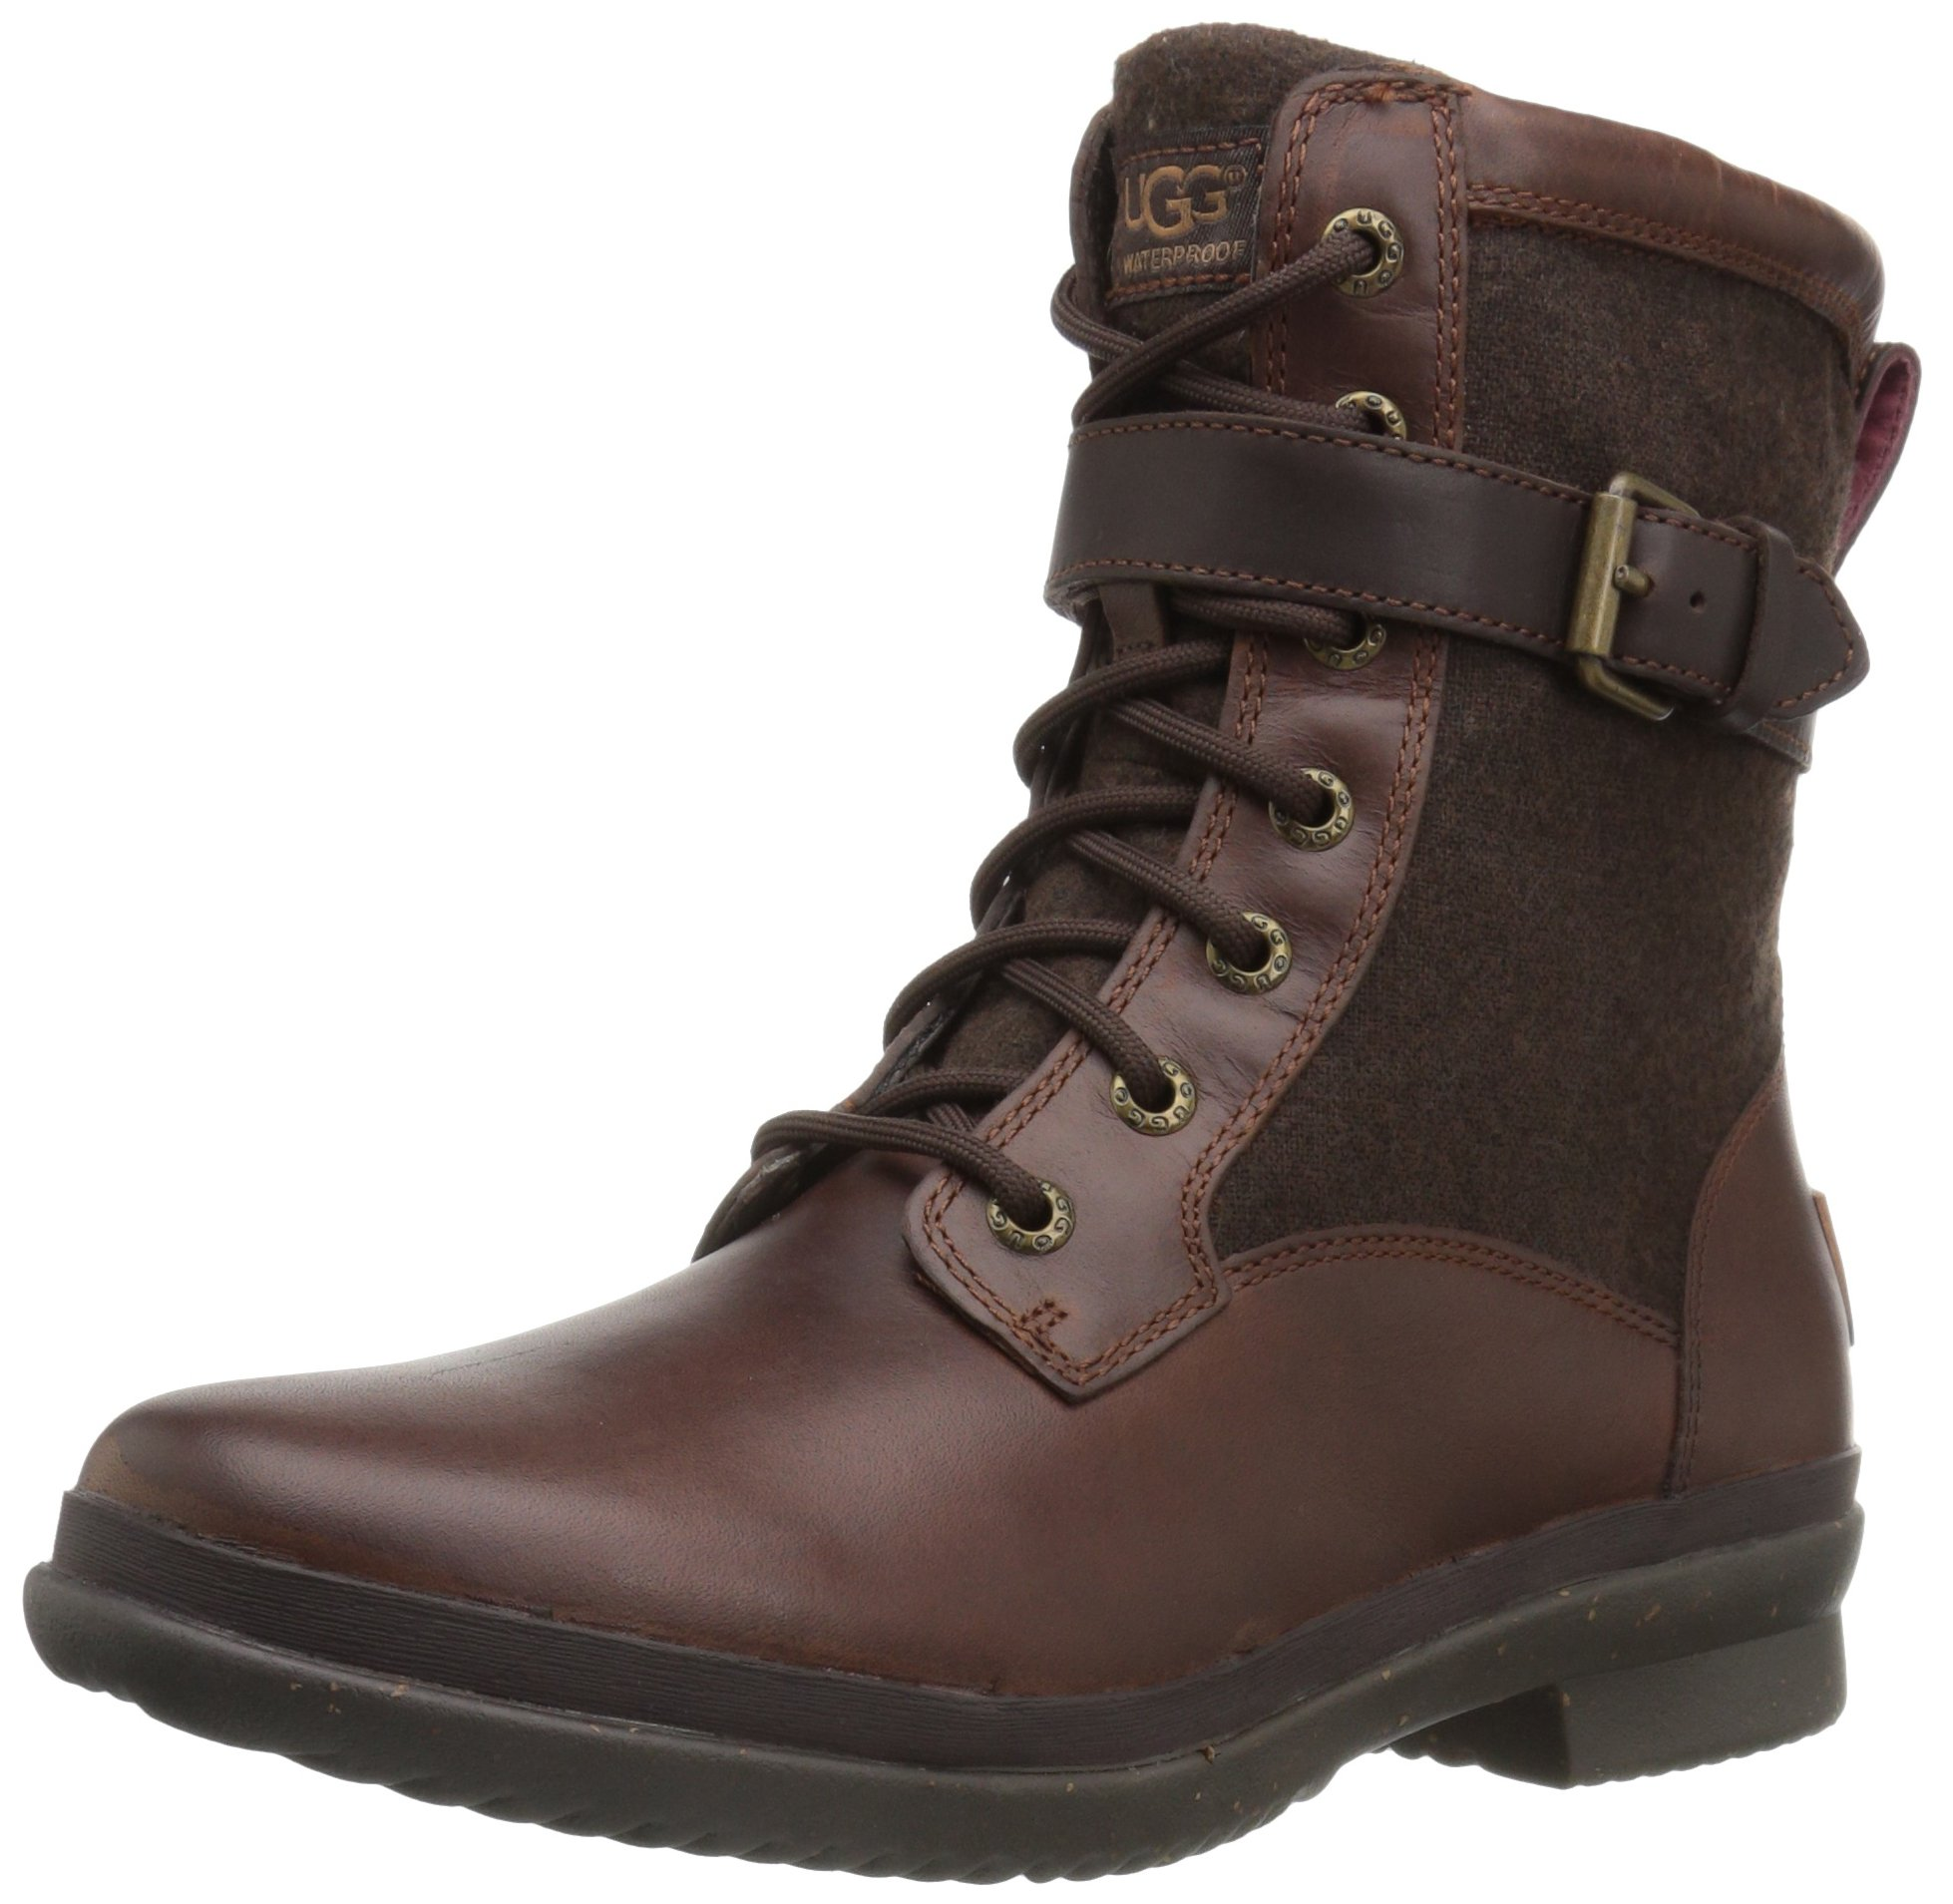 UGG Women's Kesey Motorcycle Boot, Chestnut, 7.5 B US